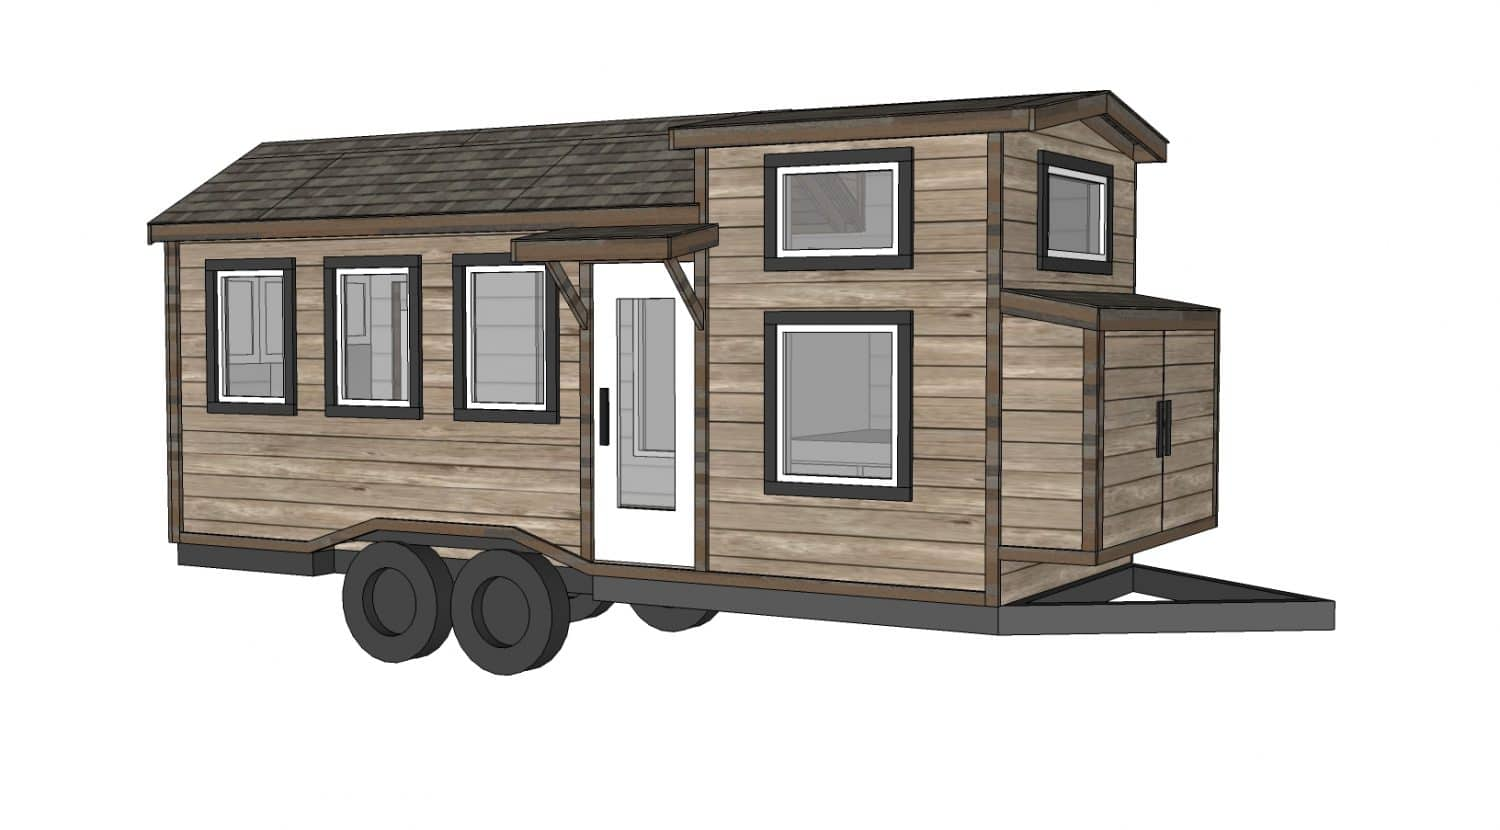 Construire sa propre tiny house plans gratuits et for Small homes design